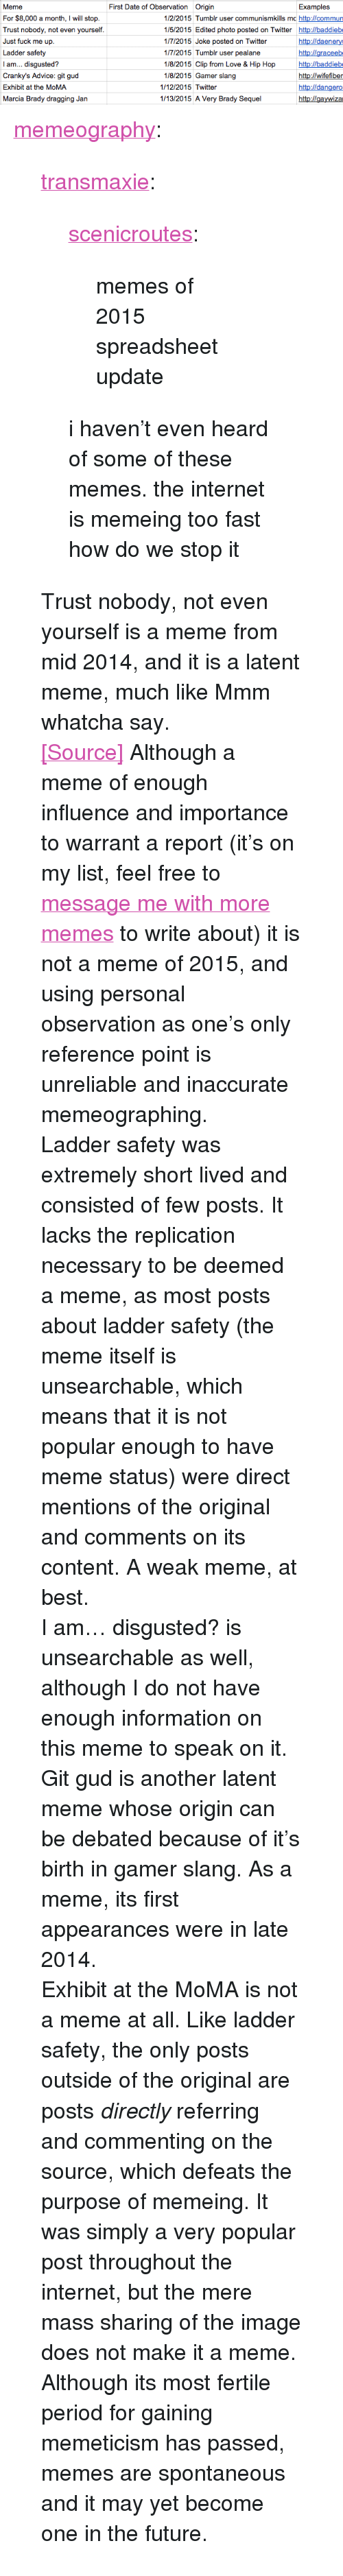 """knowyourmeme: Meme  For $8,000 a month, I will stop  Trust nobody, not even yourself  Just fuck me up  Ladder safety  I am... disgusted?  Cranky's Advice: git gud  Exhibit at the MoMA  Marcia Brady dragging Jan  First Date of Observation  Origin  Examples  1/2/2015 Tumblr user communismkills mc http://commun  1/5/2015 Edited photo posted on Twitter http://baddiebe  1/7/2015 Joke posted on Twitter  1/7/2015 Tumblr user pealane  1/8/2015 Clip from Love & Hip Hop  /8/2015 Gamer slang  /ldaene  http:llbadiebe  wifefiber  dangero  rgaywiza  1/12/2015 Twitter  1/13/2015 A Very Brady Sequel <p><a class=""""tumblr_blog"""" href=""""http://memeography.tumblr.com/post/108396930543/transmaxie-scenicroutes-memes-of-2015"""">memeography</a>:</p> <blockquote> <p><a class=""""tumblr_blog"""" href=""""http://transmaxie.tumblr.com/post/108174346731/scenicroutes-memes-of-2015-spreadsheet-update"""">transmaxie</a>:</p> <blockquote> <p><a class=""""tumblr_blog"""" href=""""http://scenicrout.es/post/107995329420/memes-of-2015-spreadsheet-update"""">scenicroutes</a>:</p> <blockquote> <p>memes of 2015 spreadsheet update</p> </blockquote> <p>i haven't even heard of some of these memes. the internet is memeing too fast how do we stop it</p> </blockquote> <p>Trust nobody, not even yourself is a meme from mid 2014, and it is a latent meme, much like Mmm whatcha say. <a href=""""http://knowyourmeme.com/memes/trust-nobody-not-even-yourself"""">[Source]</a>Although a meme of enough influence and importance to warrant a report (it's on my list, feel free to <a href=""""http://memeography.tumblr.com/ask"""">message me with more memes</a> to write about) it is not a meme of 2015, and using personal observation as one's only reference point is unreliable and inaccurate memeographing.</p> <p>Ladder safety was extremely short lived and consisted of few posts. It lacks the replication necessary to be deemed a meme, as most posts about ladder safety (the meme itself is unsearchable, which means that it is not popular enough to have meme status) were """